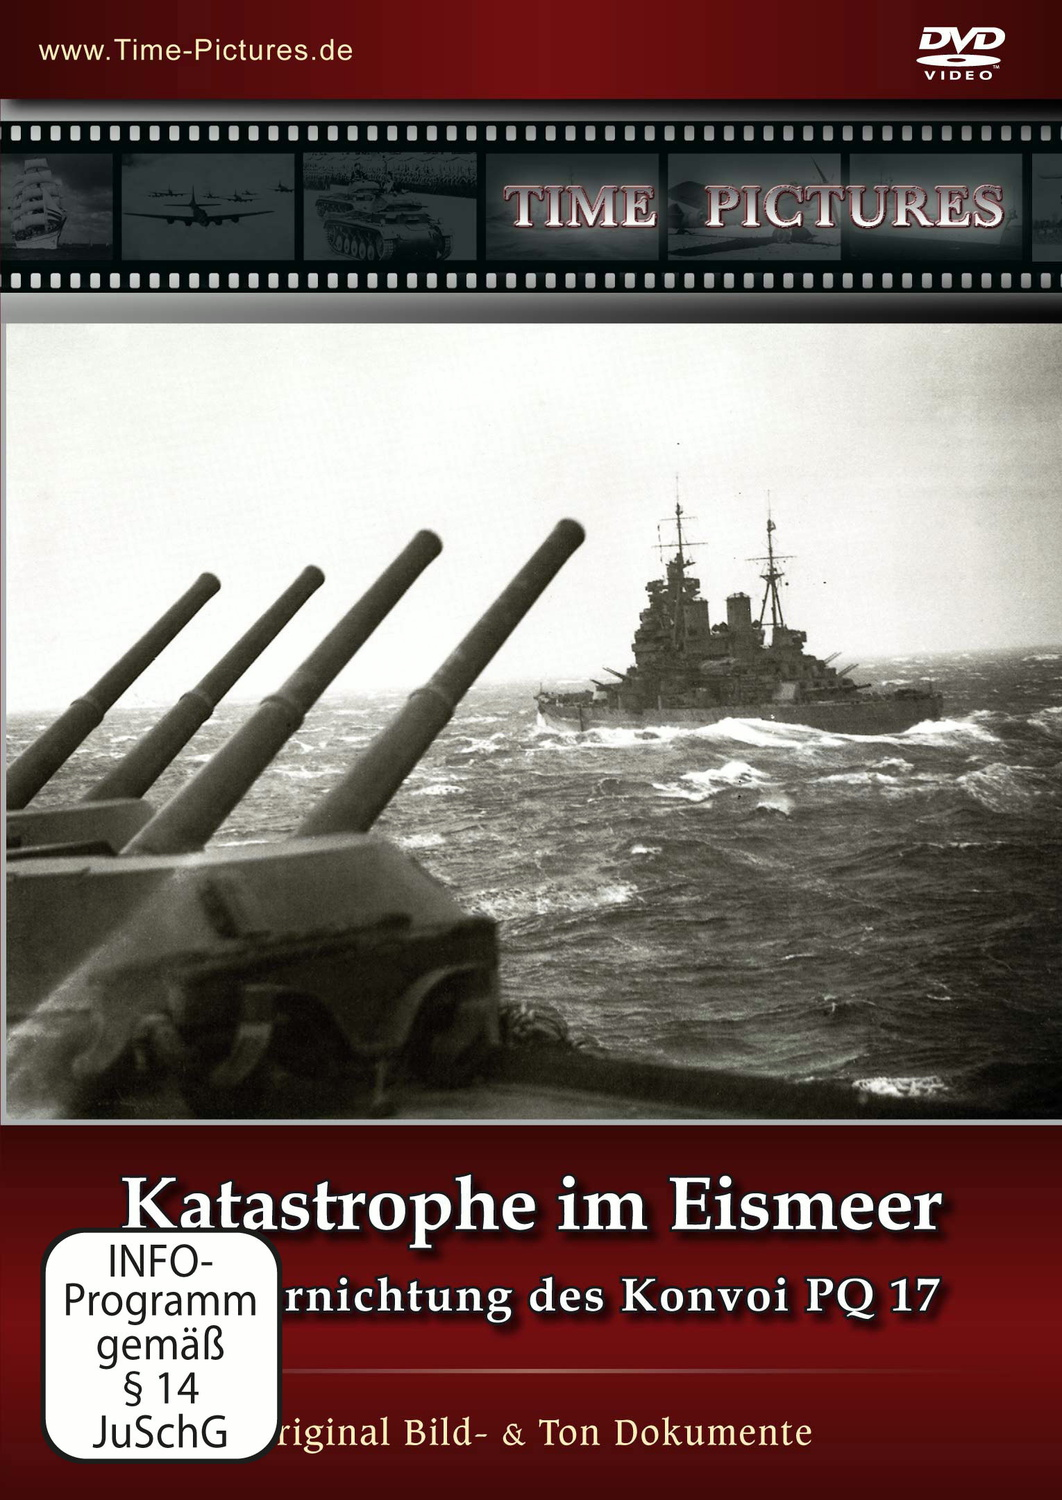 Katastrophe im Eismeer- Time Pictures